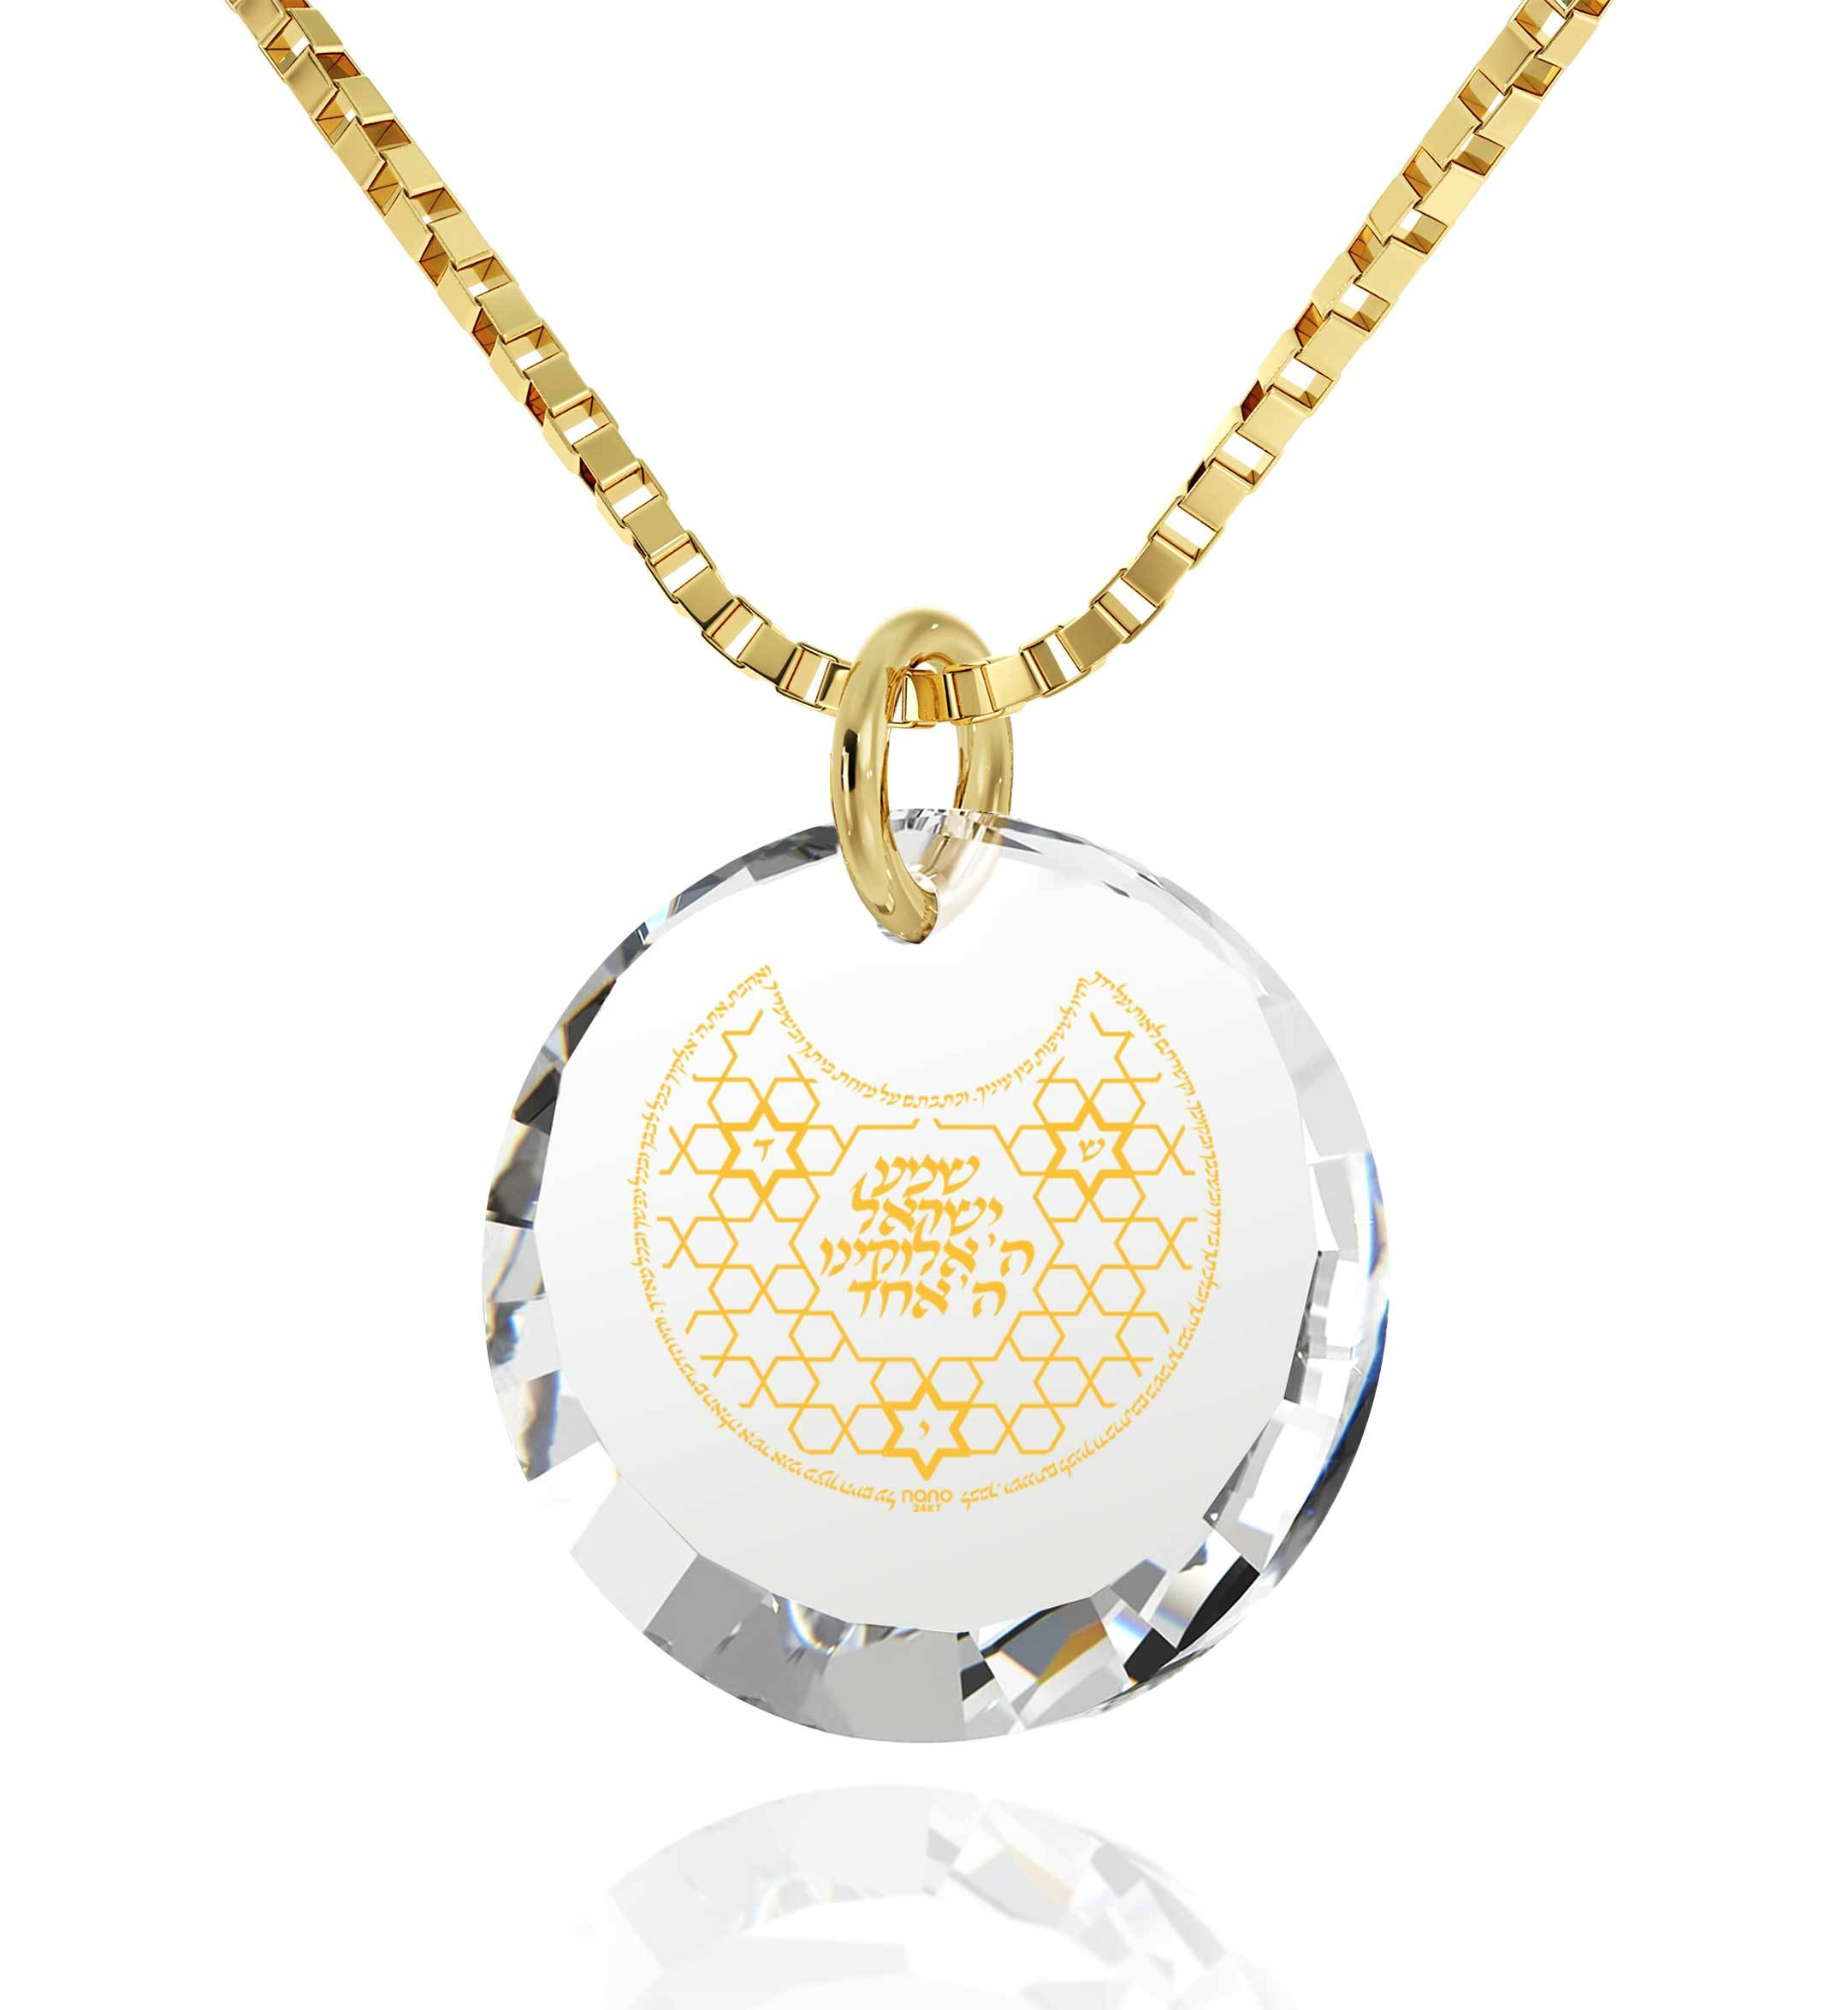 """Shema Yisrael"" Engraved in 24k, Jewish Necklace with Swarovski Crystal Stone, Jewelry from Israel"